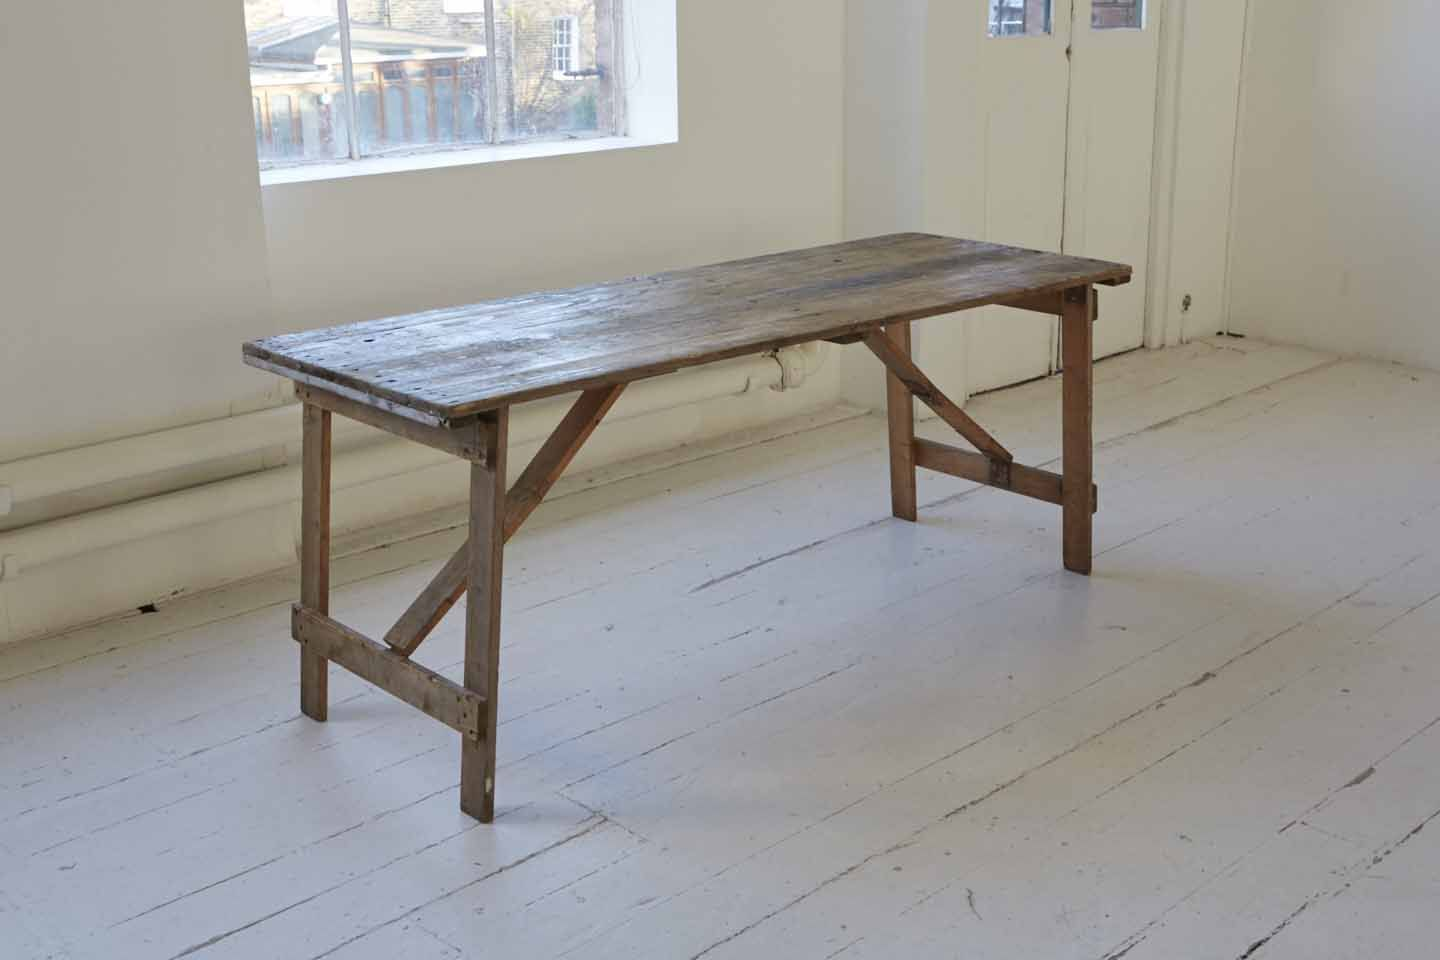 Wooden Rustic Trestle Table Hire Trestle Table Be Event Hire